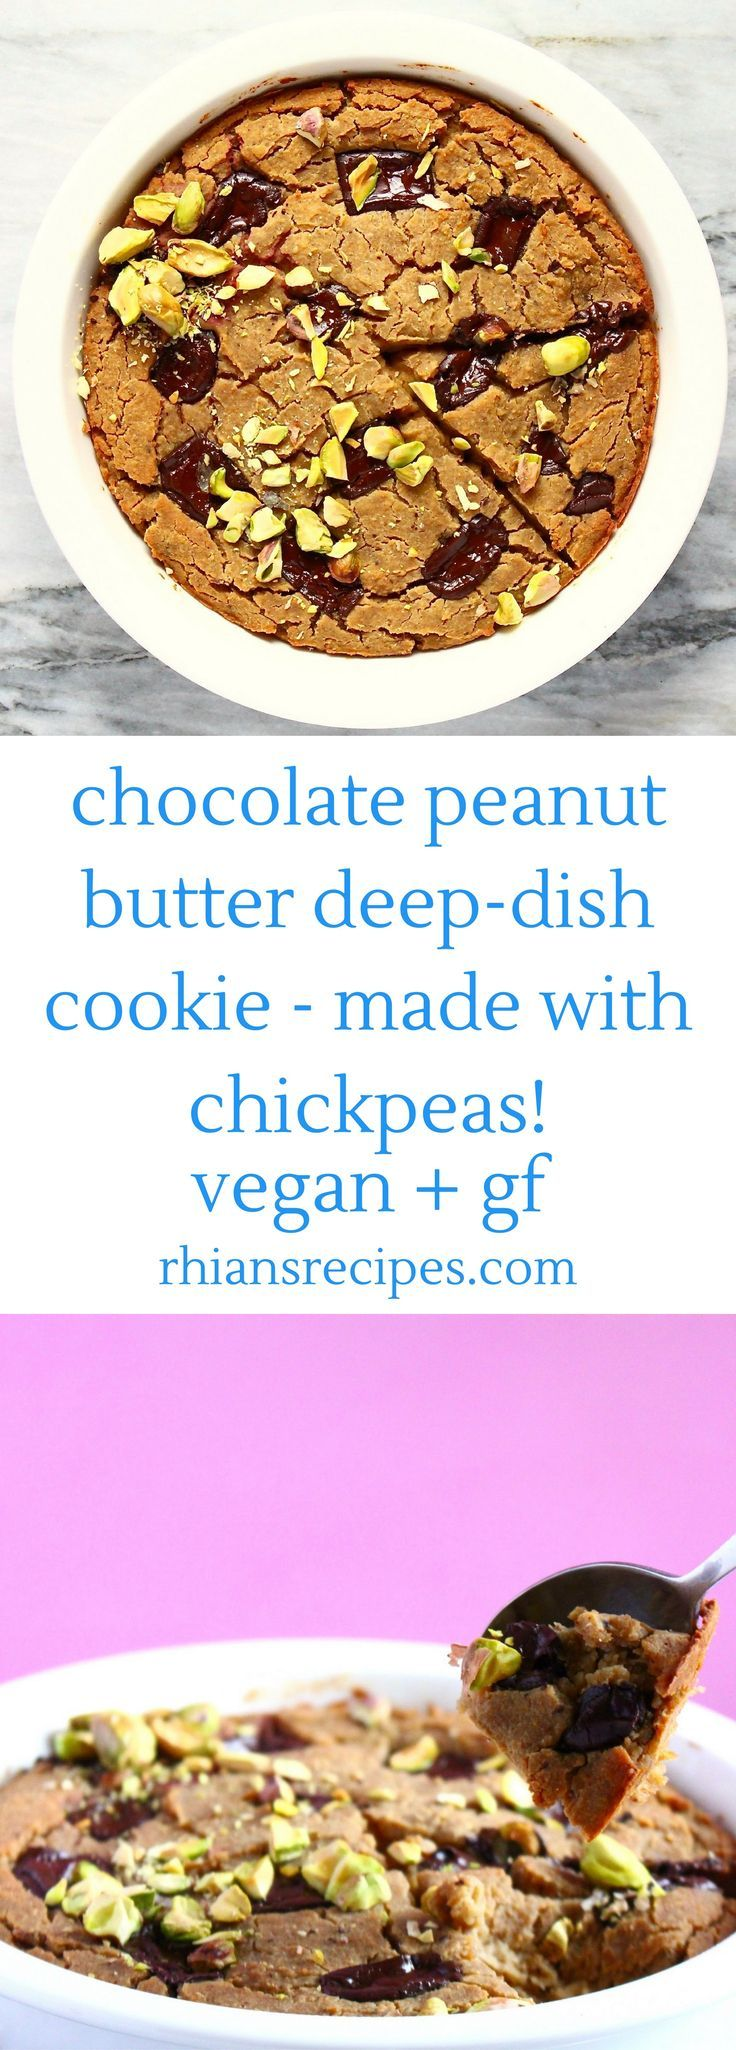 Peanut Butter Chocolate Chip Deep-Dish/Skillet Cookie made from chickpeas! Vegan, gluten-free, easy to make and secretly healthy!